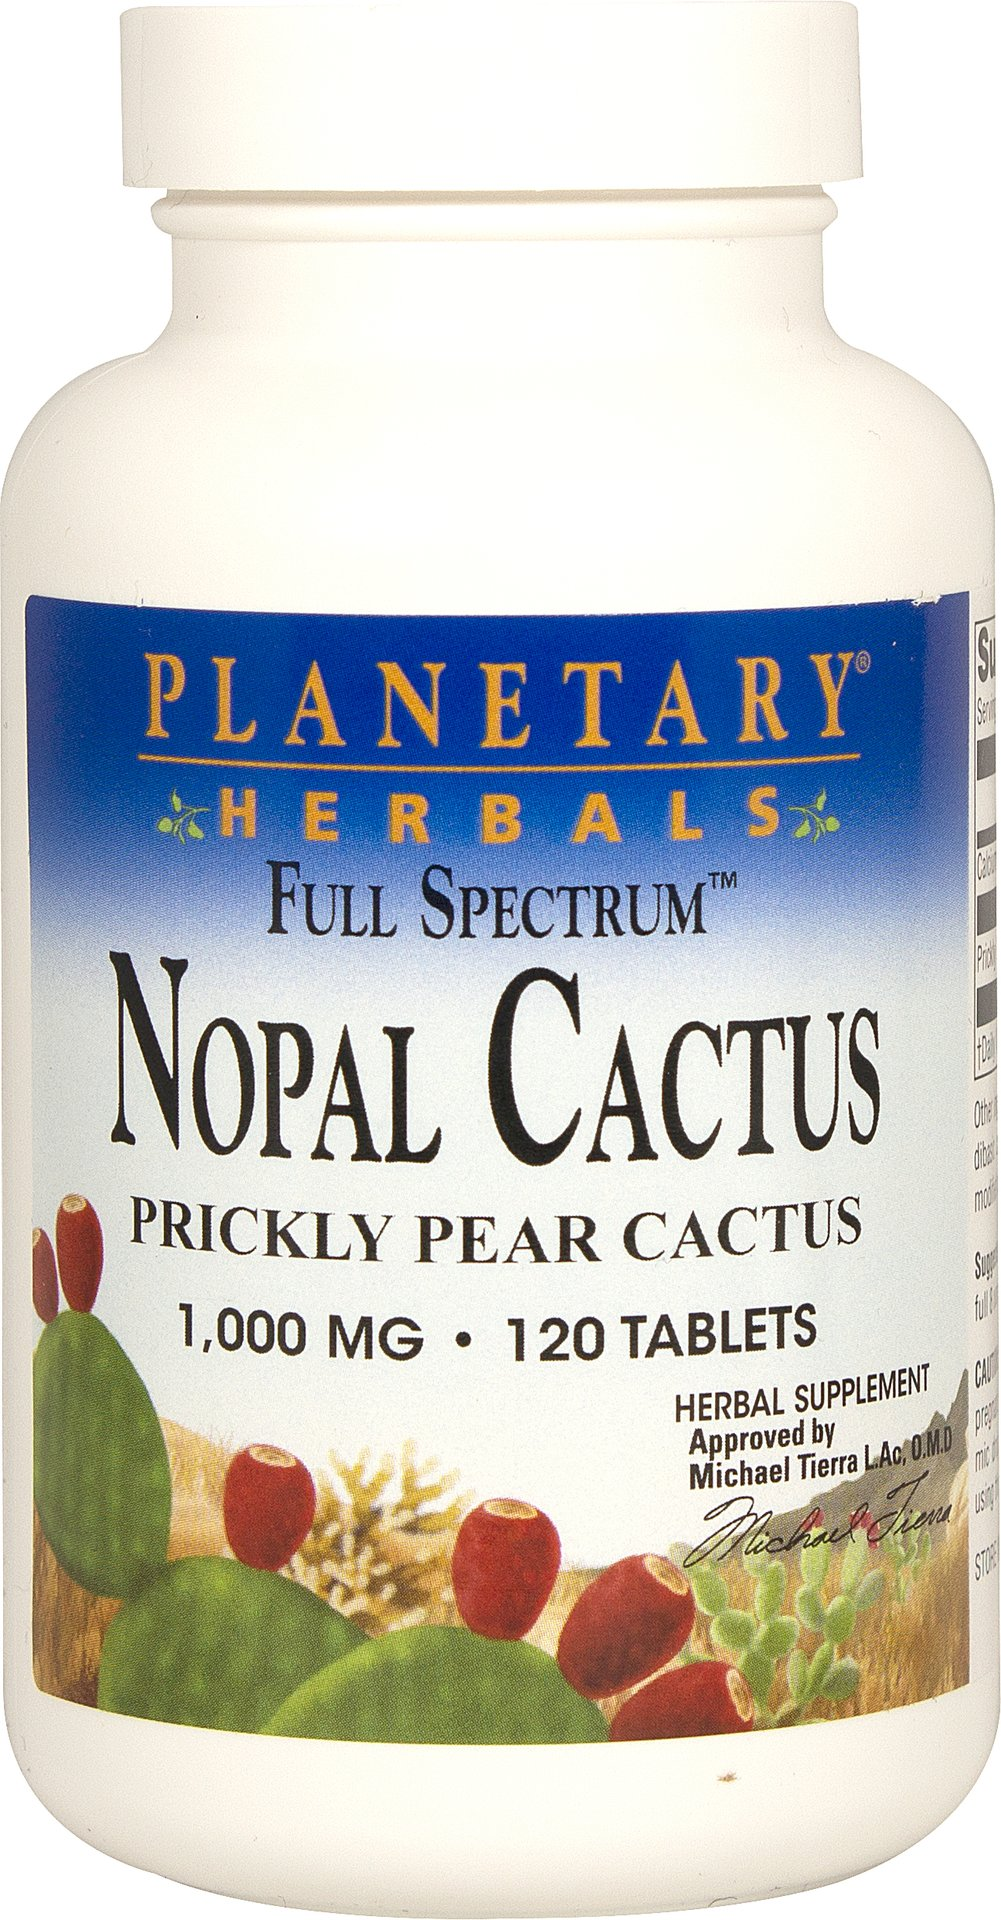 Nopal Cactus Prickly Pear 1,000 mg Thumbnail Alternate Bottle View